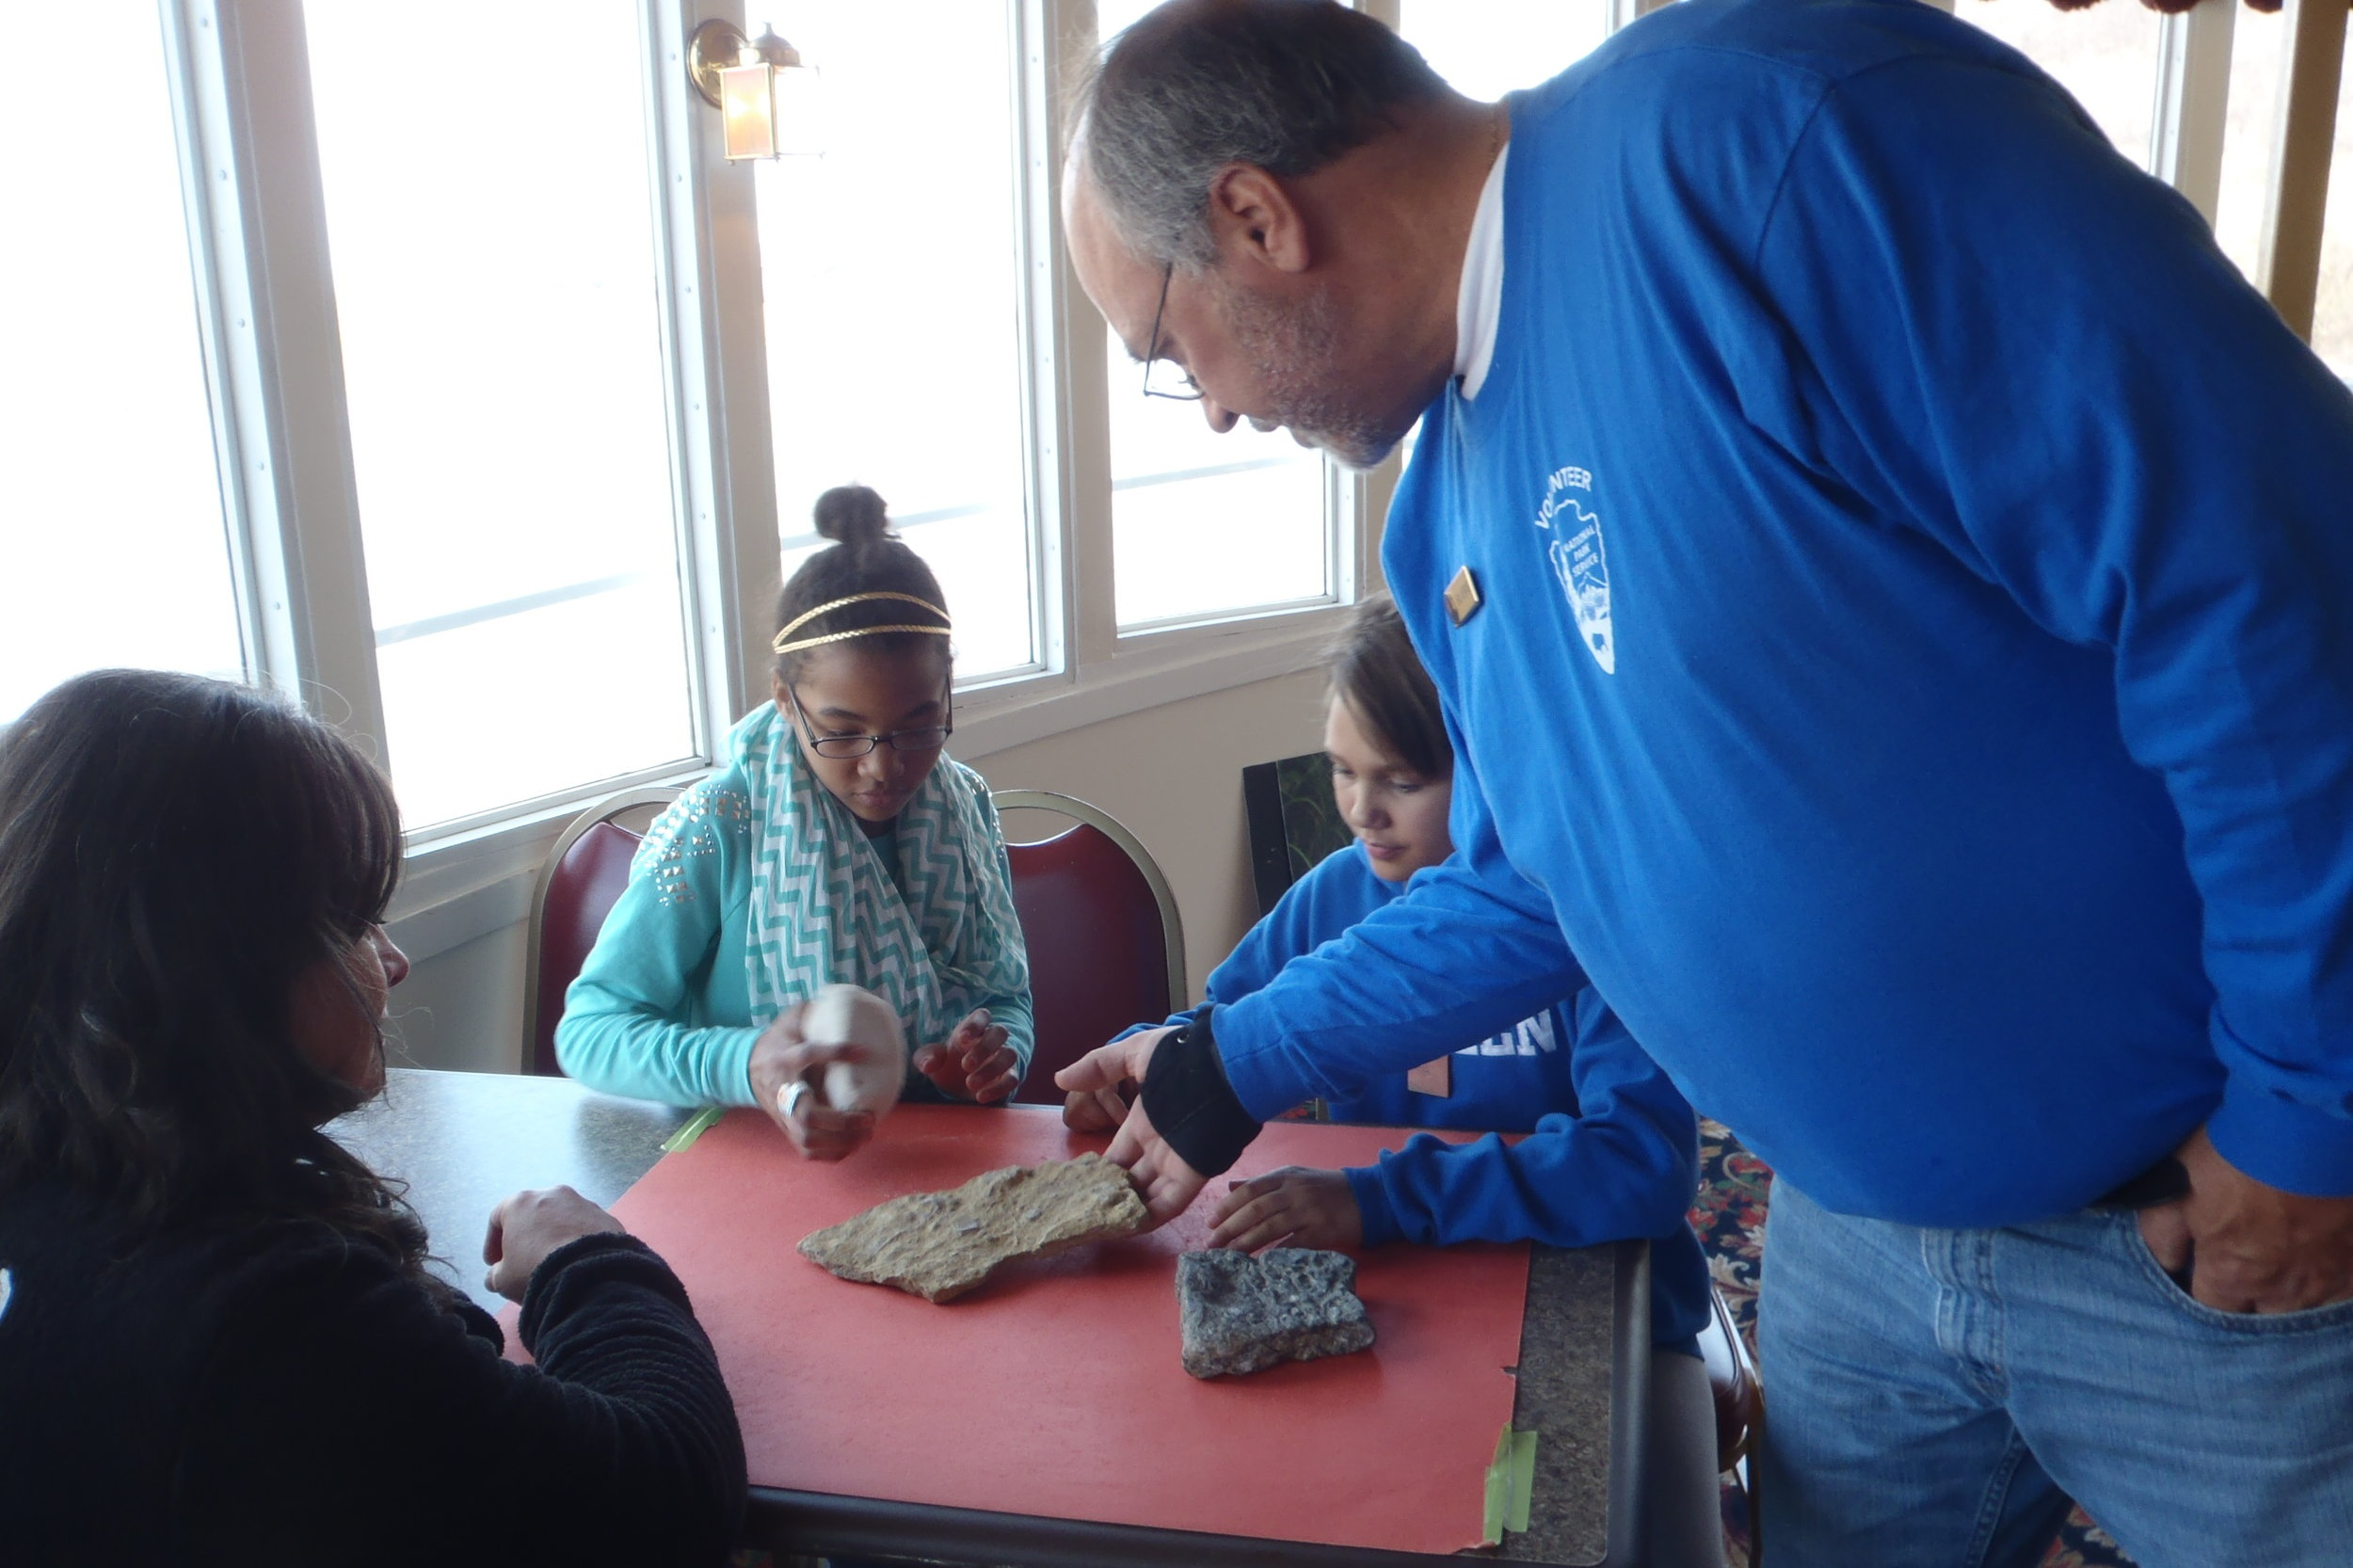 Geology Station - Assist a park ranger with the presentation of the